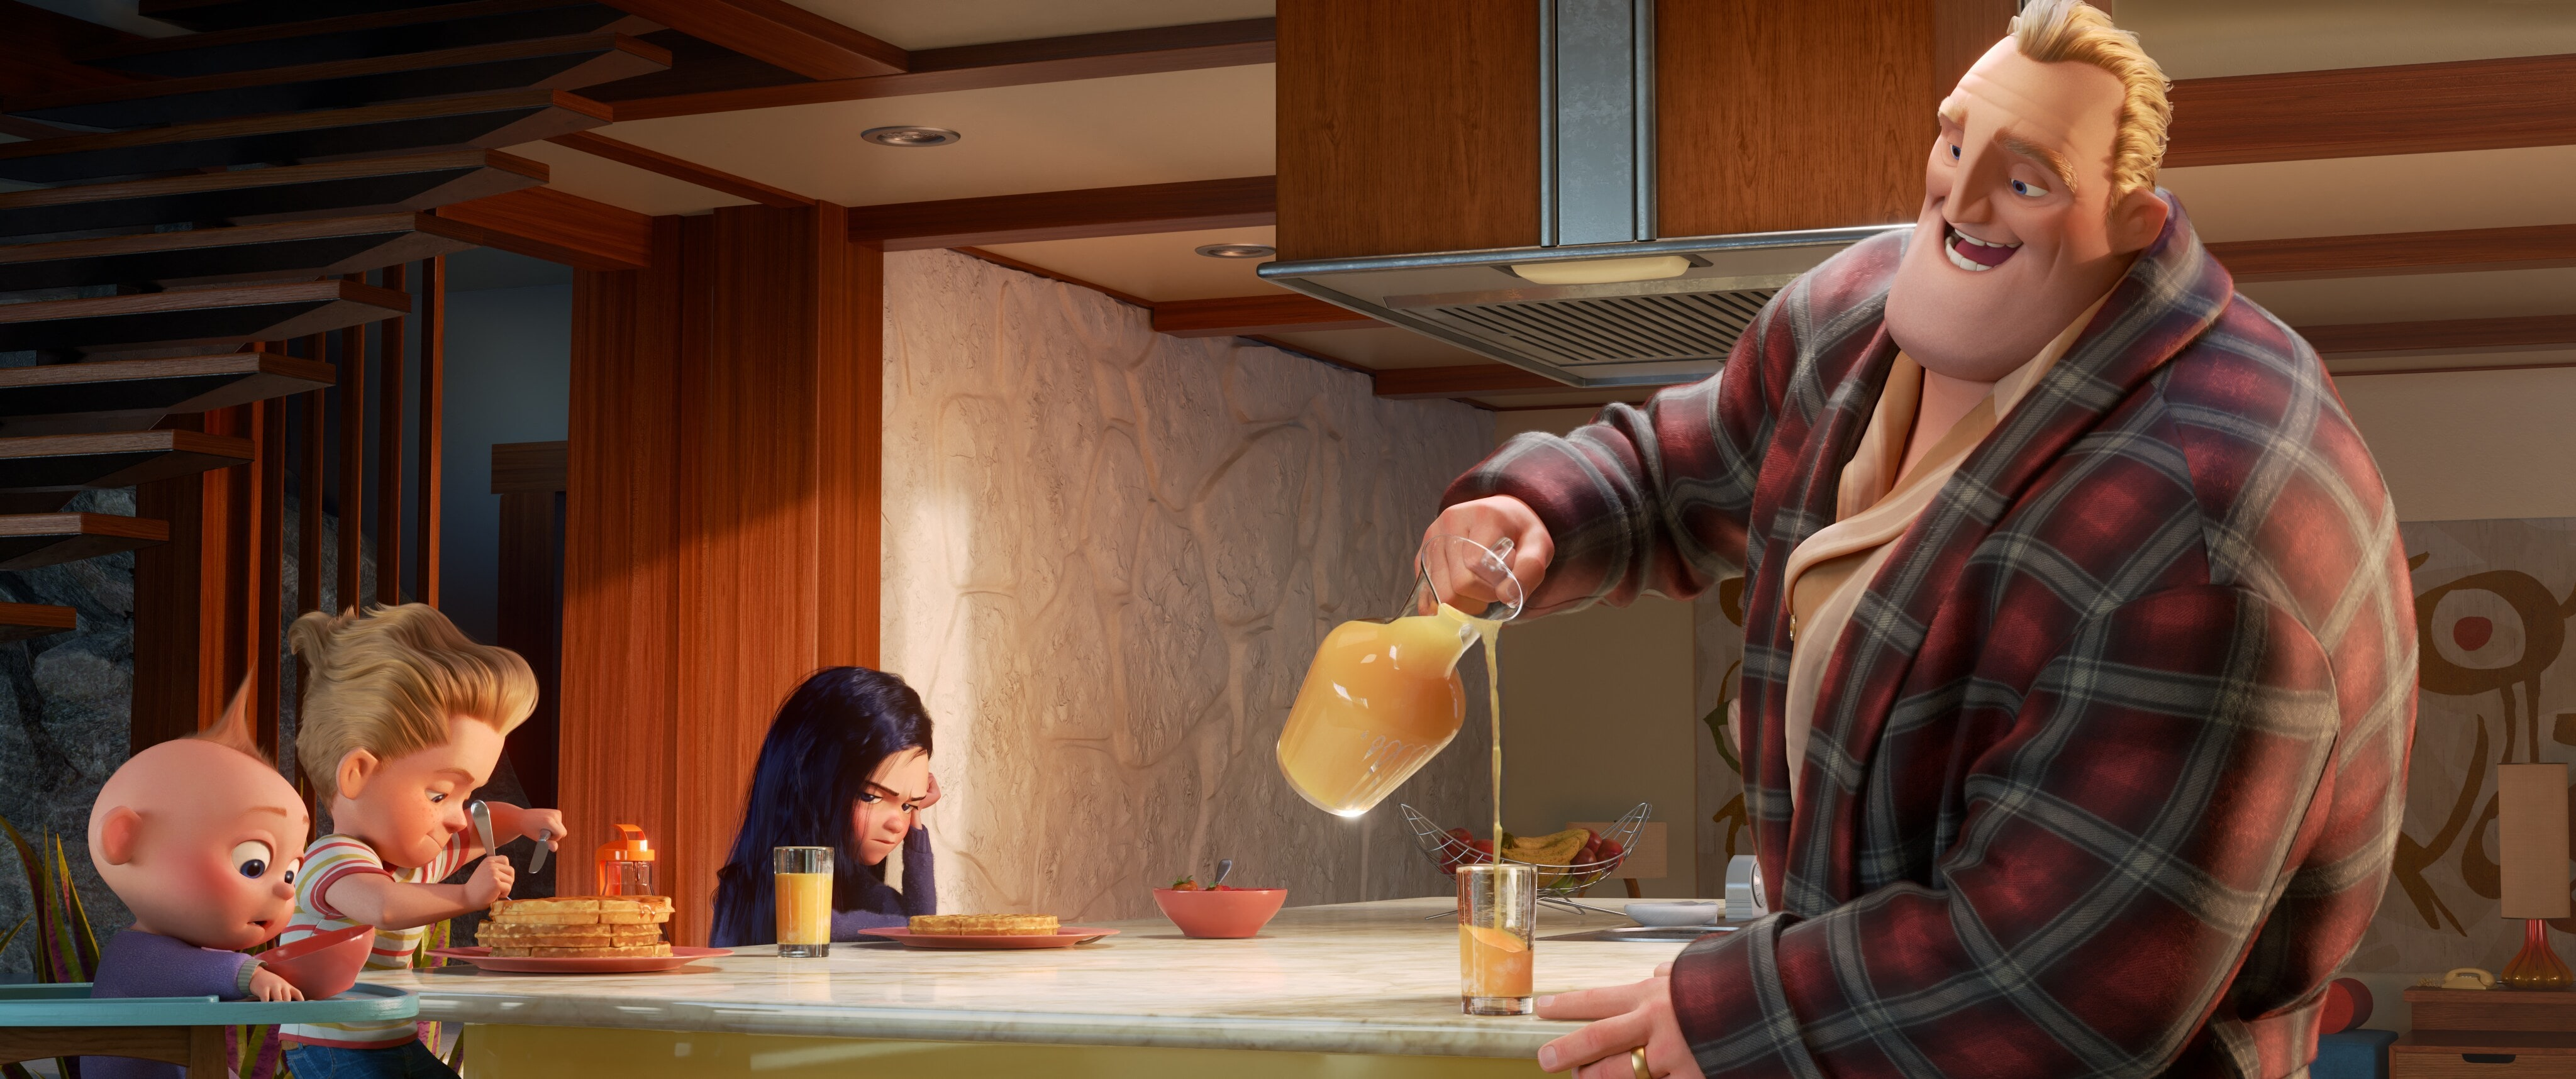 Bill Parrs (Mr. Incredible) pouring orange juice with Violet, Dash and Jack Jack at the kitchen table eating waffles